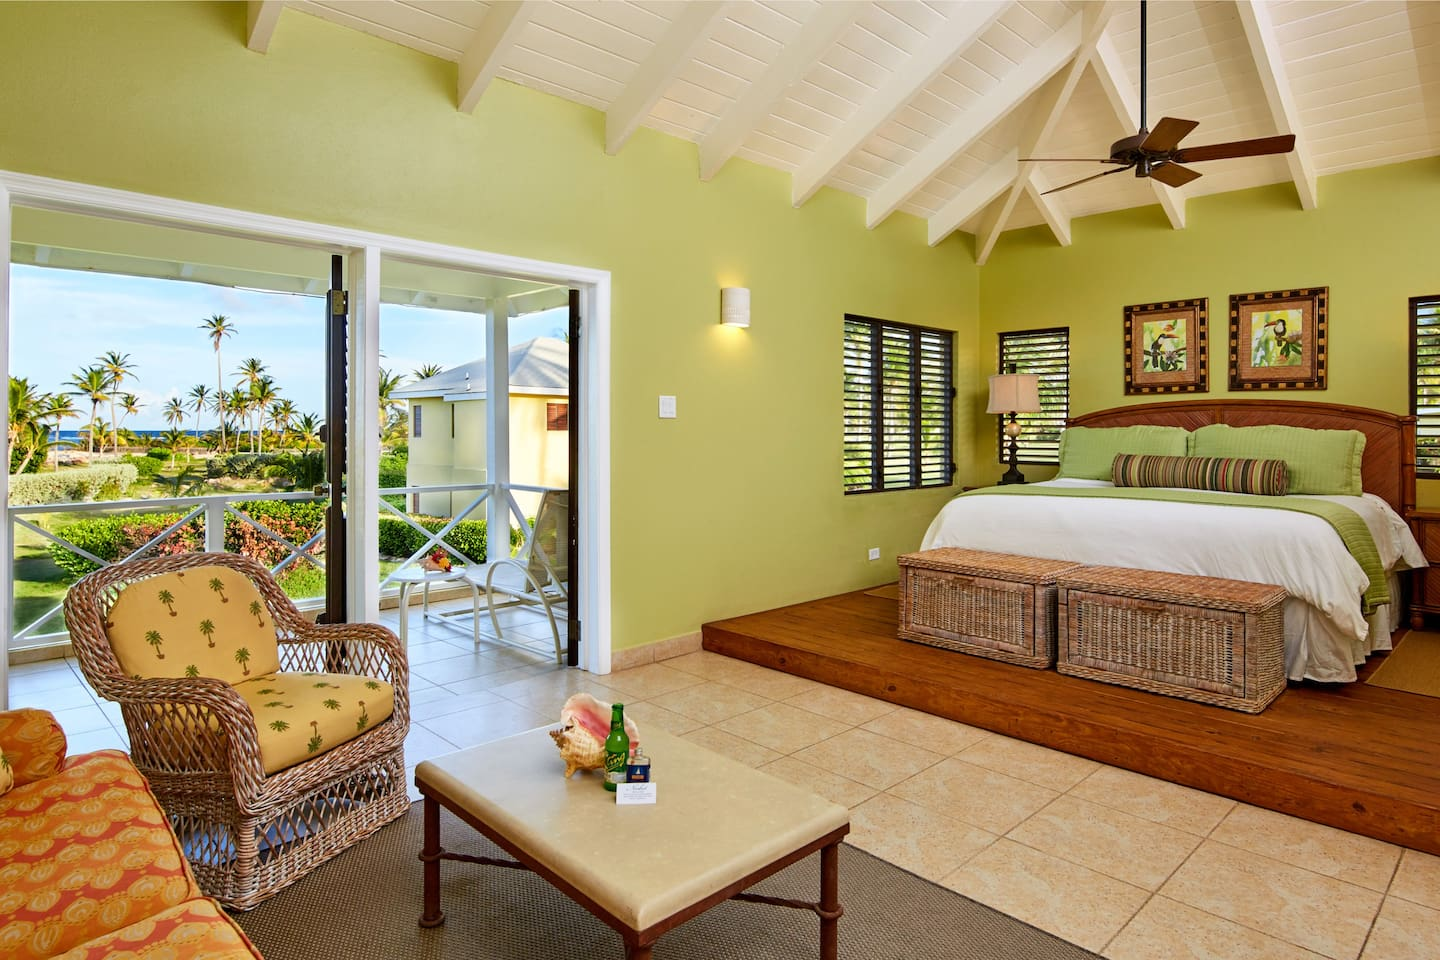 Located closest to the ocean, the Upper Premier Junior Suite offers comfort and charm.